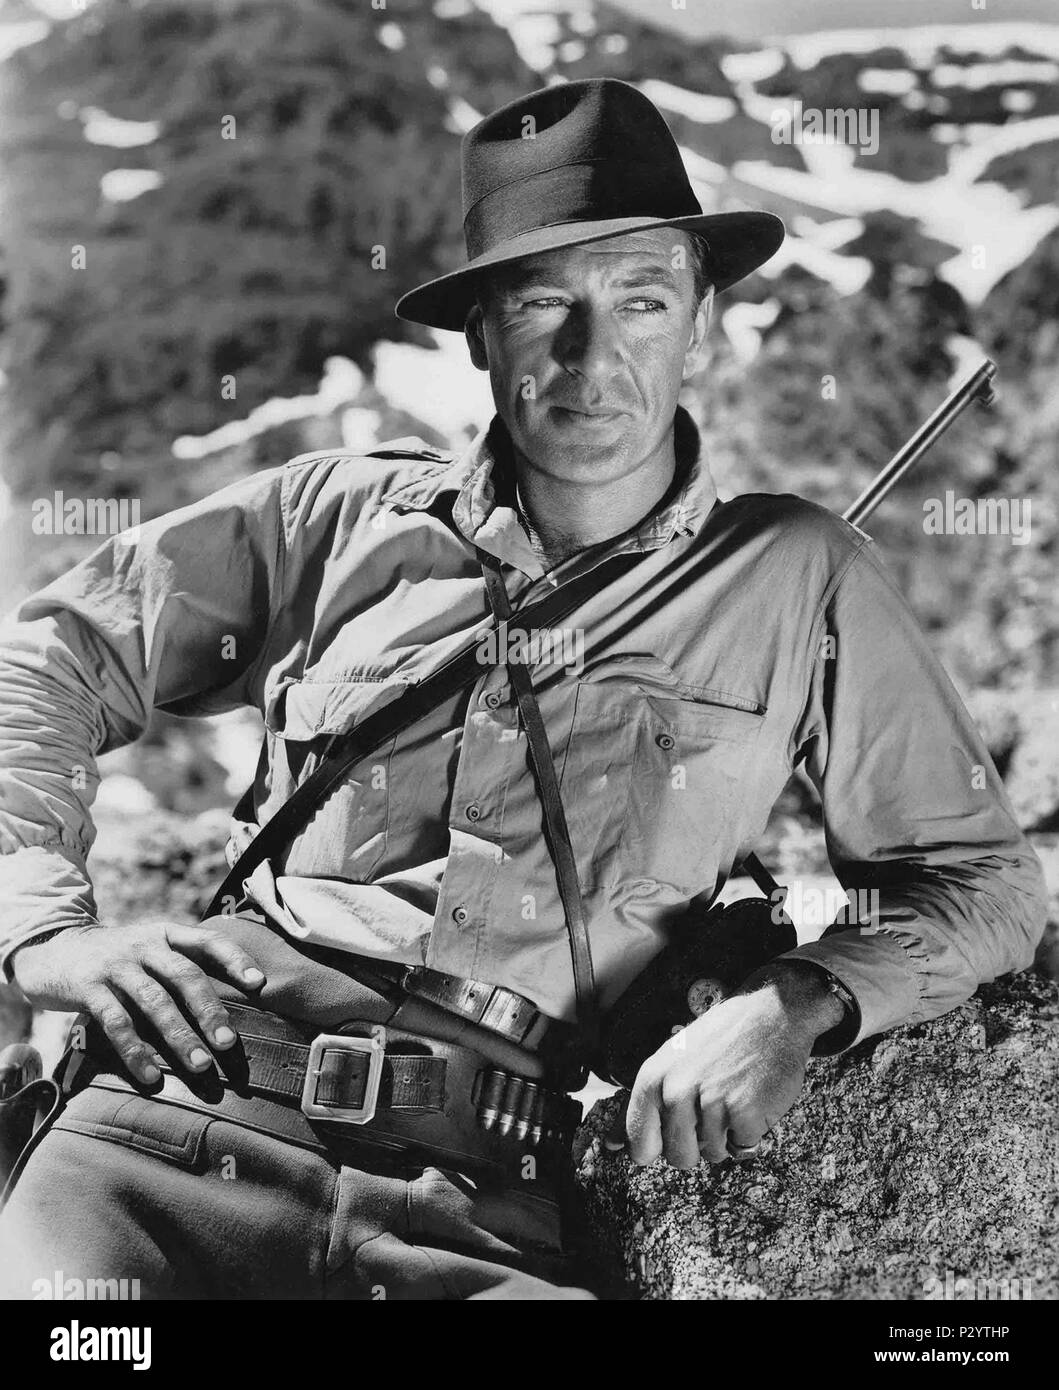 Original Film Title: FOR WHOM THE BELL TOLLS.  English Title: FOR WHOM THE BELL TOLLS.  Film Director: SAM WOOD.  Year: 1943.  Stars: GARY COOPER. Credit: PARAMOUNT PICTURES / Album - Stock Image